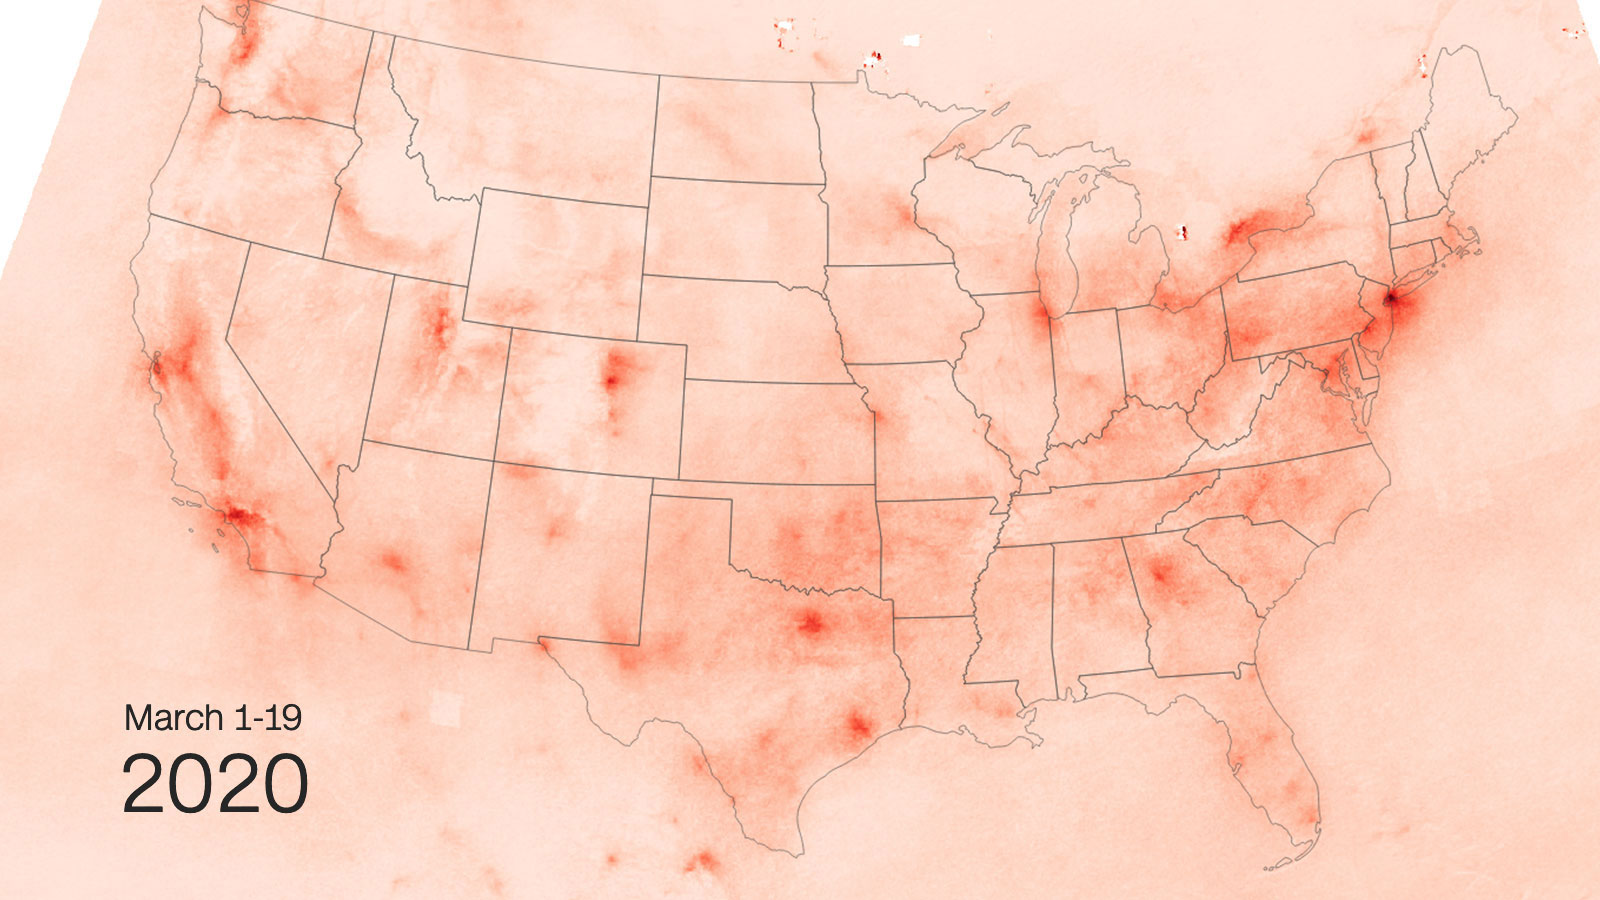 Images taken over the first three weeks of March show less nitrogen dioxide over parts of the United States than the same time last year. (CNN)